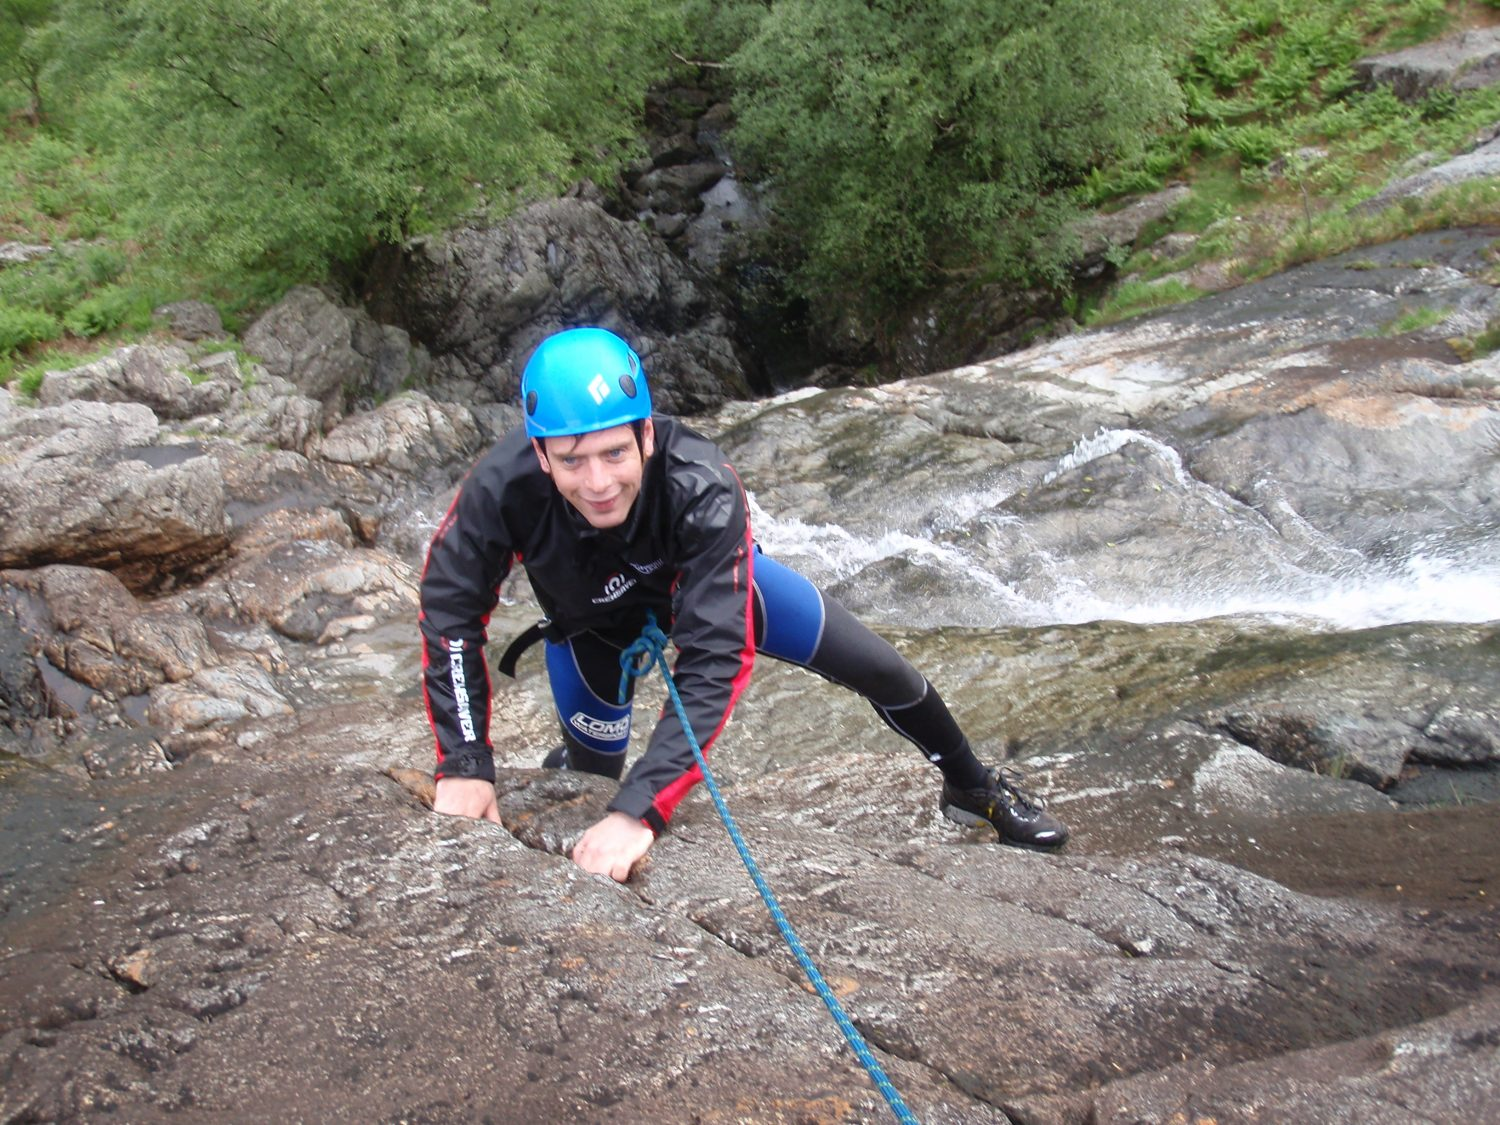 Sourmilk Ghyll Scramble Overview